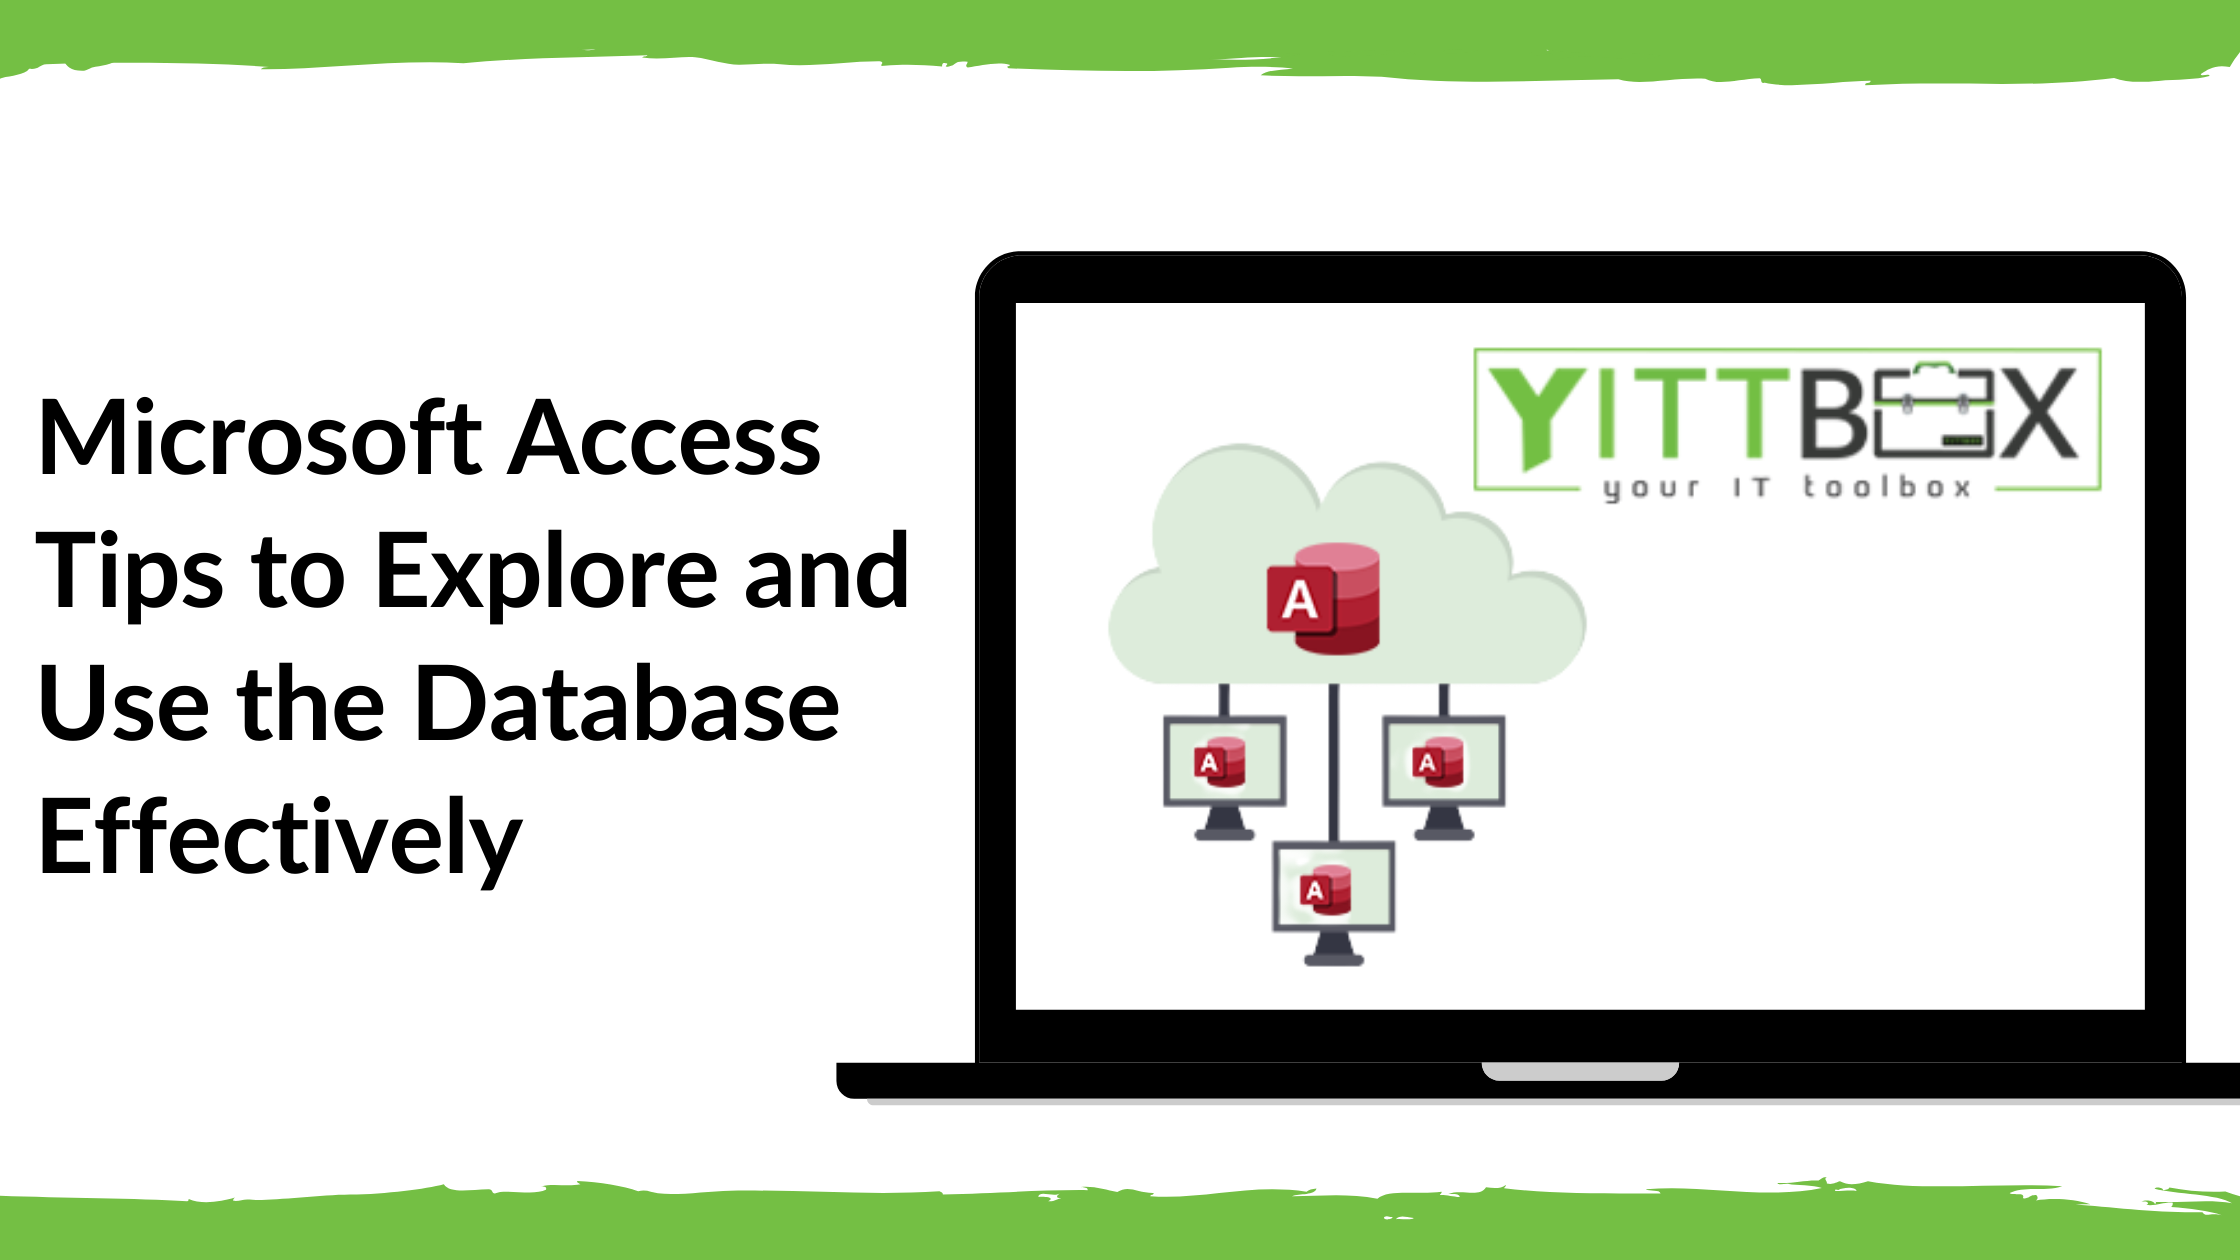 Microsoft Access Tips to Explore and Use the Database Effectively